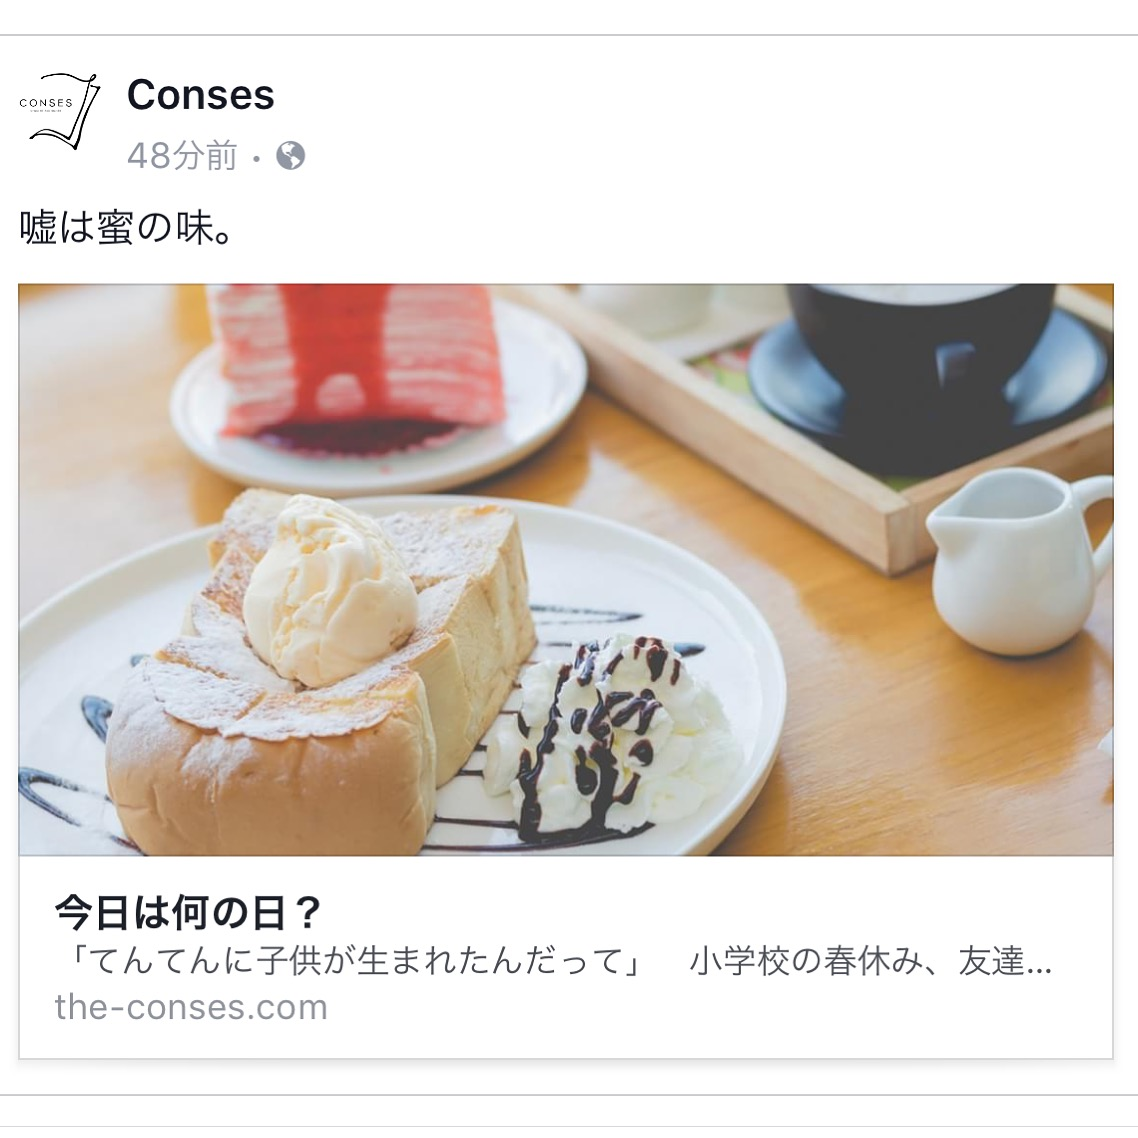 【 THE CONSES 】「嘘」をテーマに書きました。